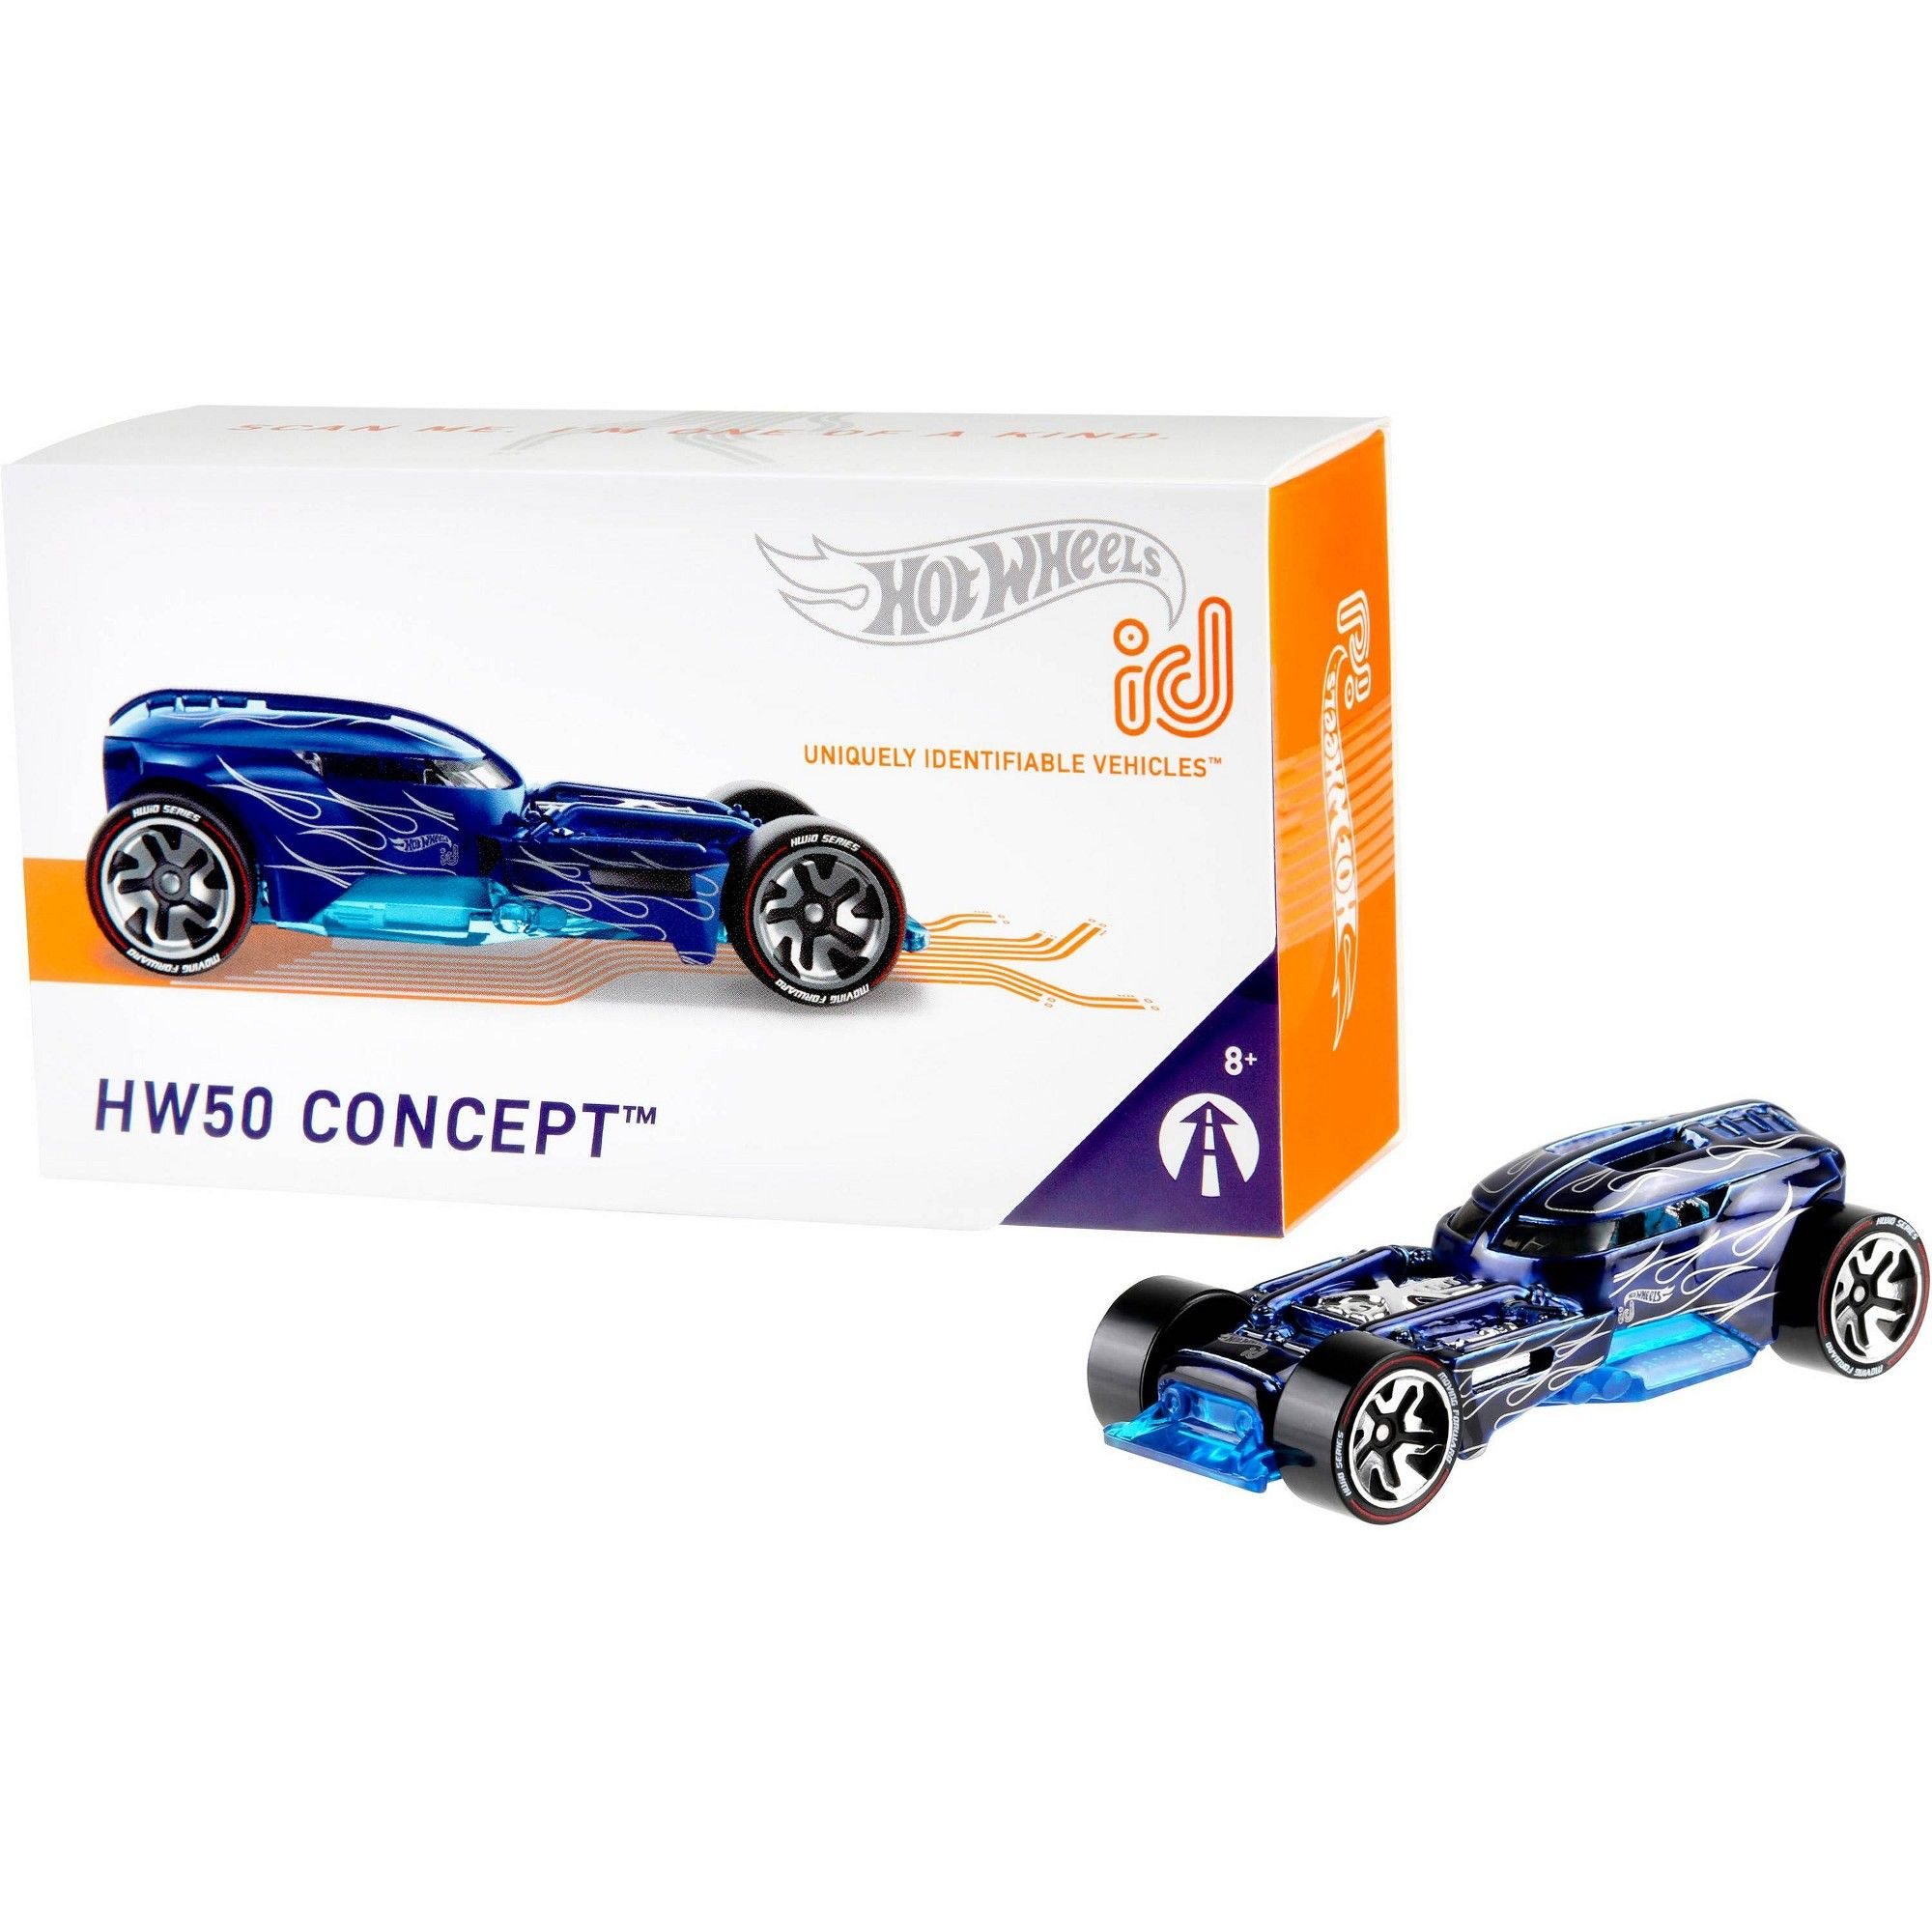 Hot Wheels Id 50th Anniversary In 2020 Hot Wheels Hot Wheels Races 50th Anniversary